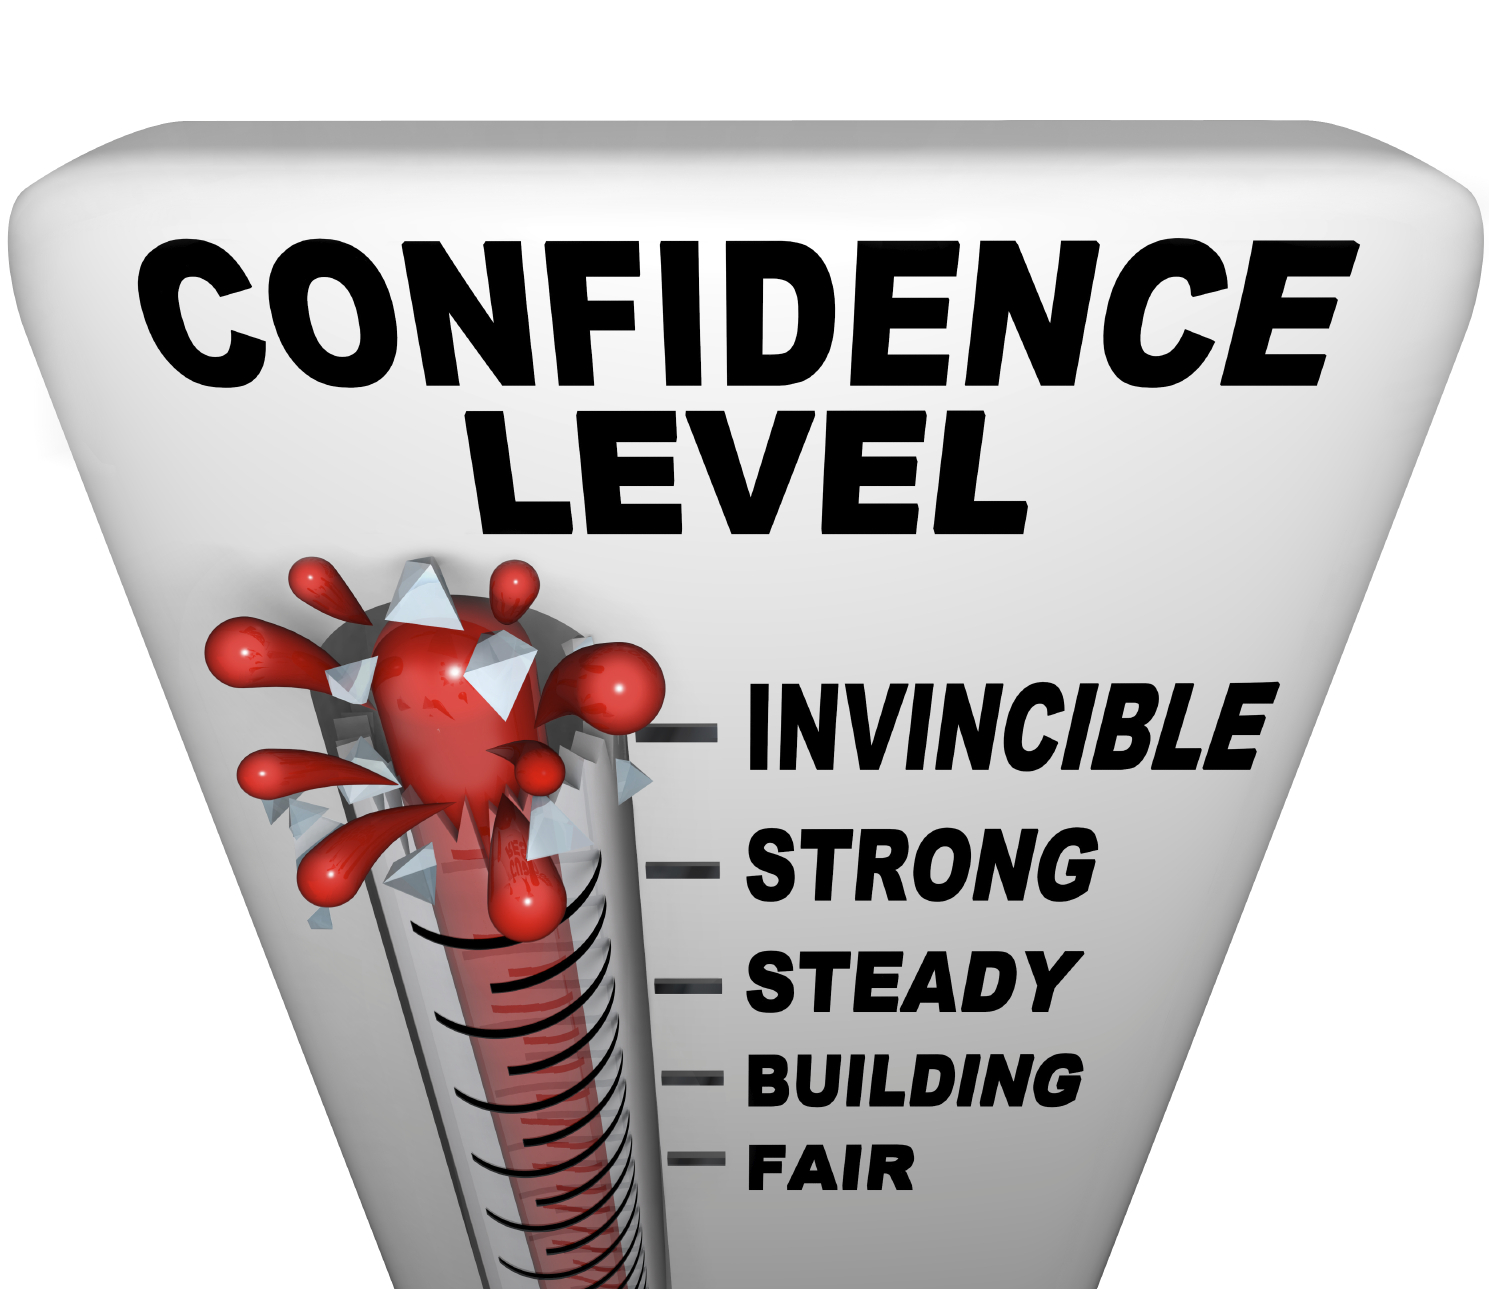 pICTURE OF cONFIDENCE